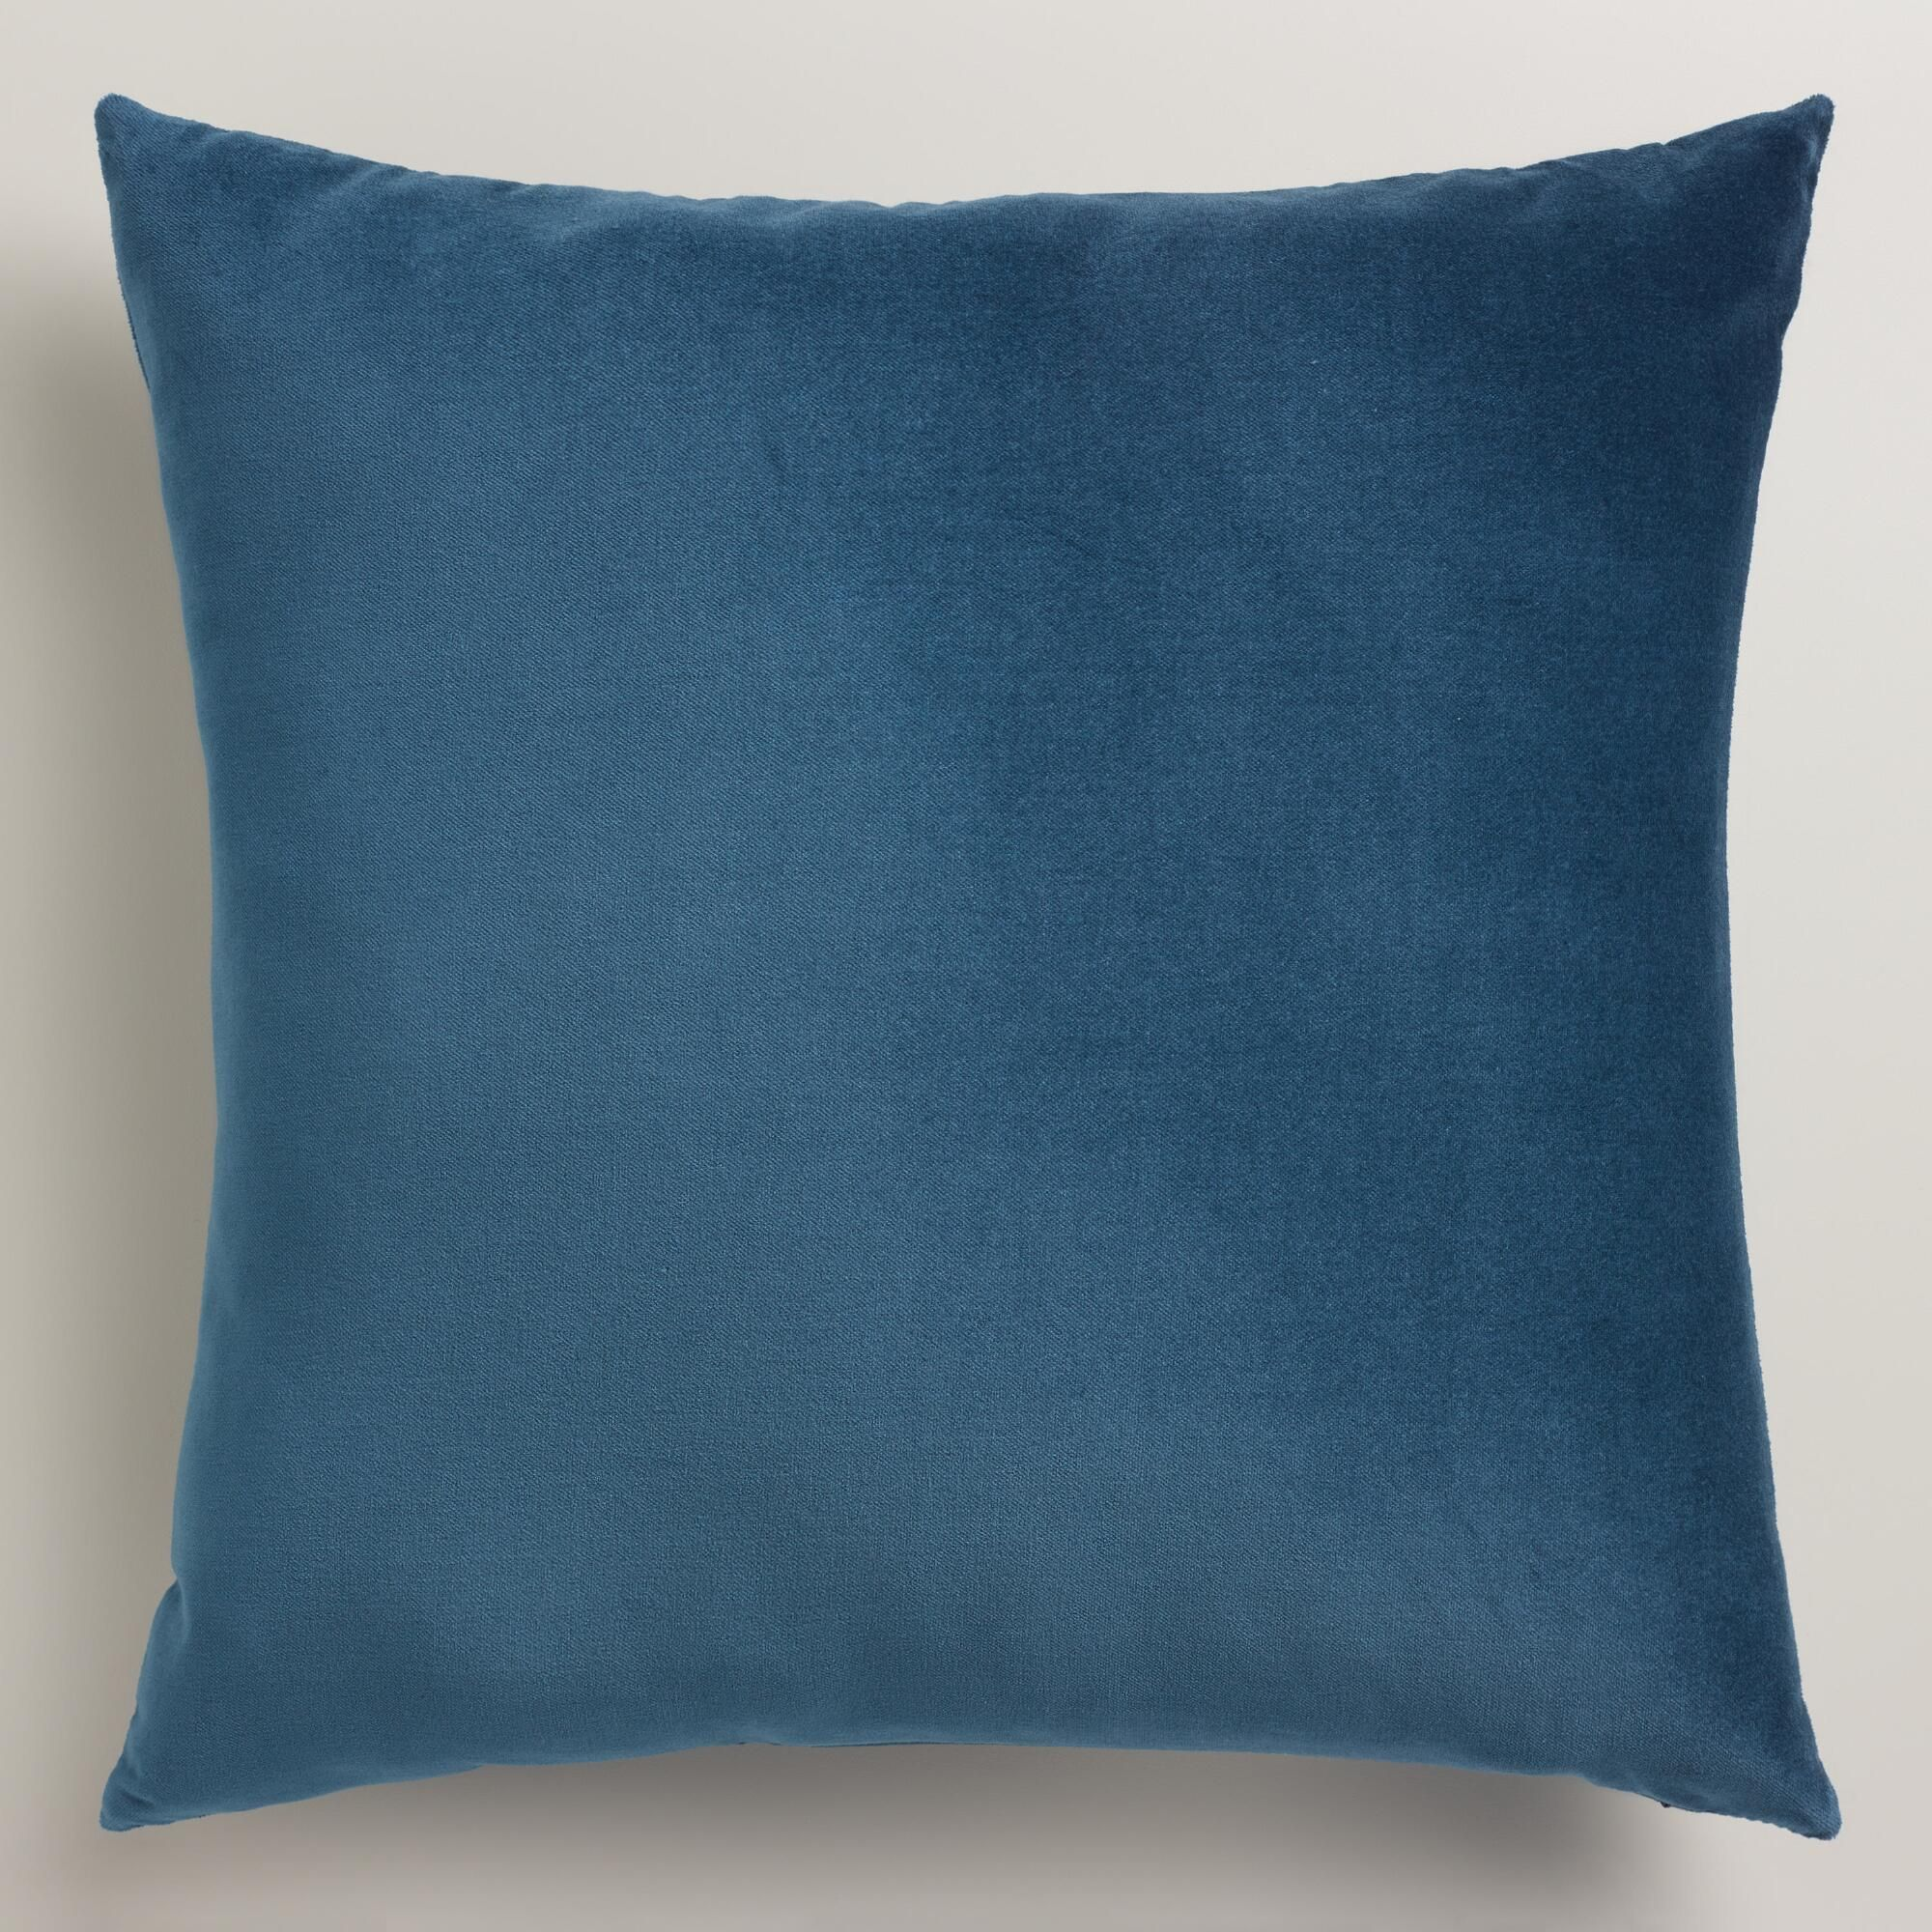 throw blue x pin textured accent decorative pillow decor sofa pillows cover cotton home